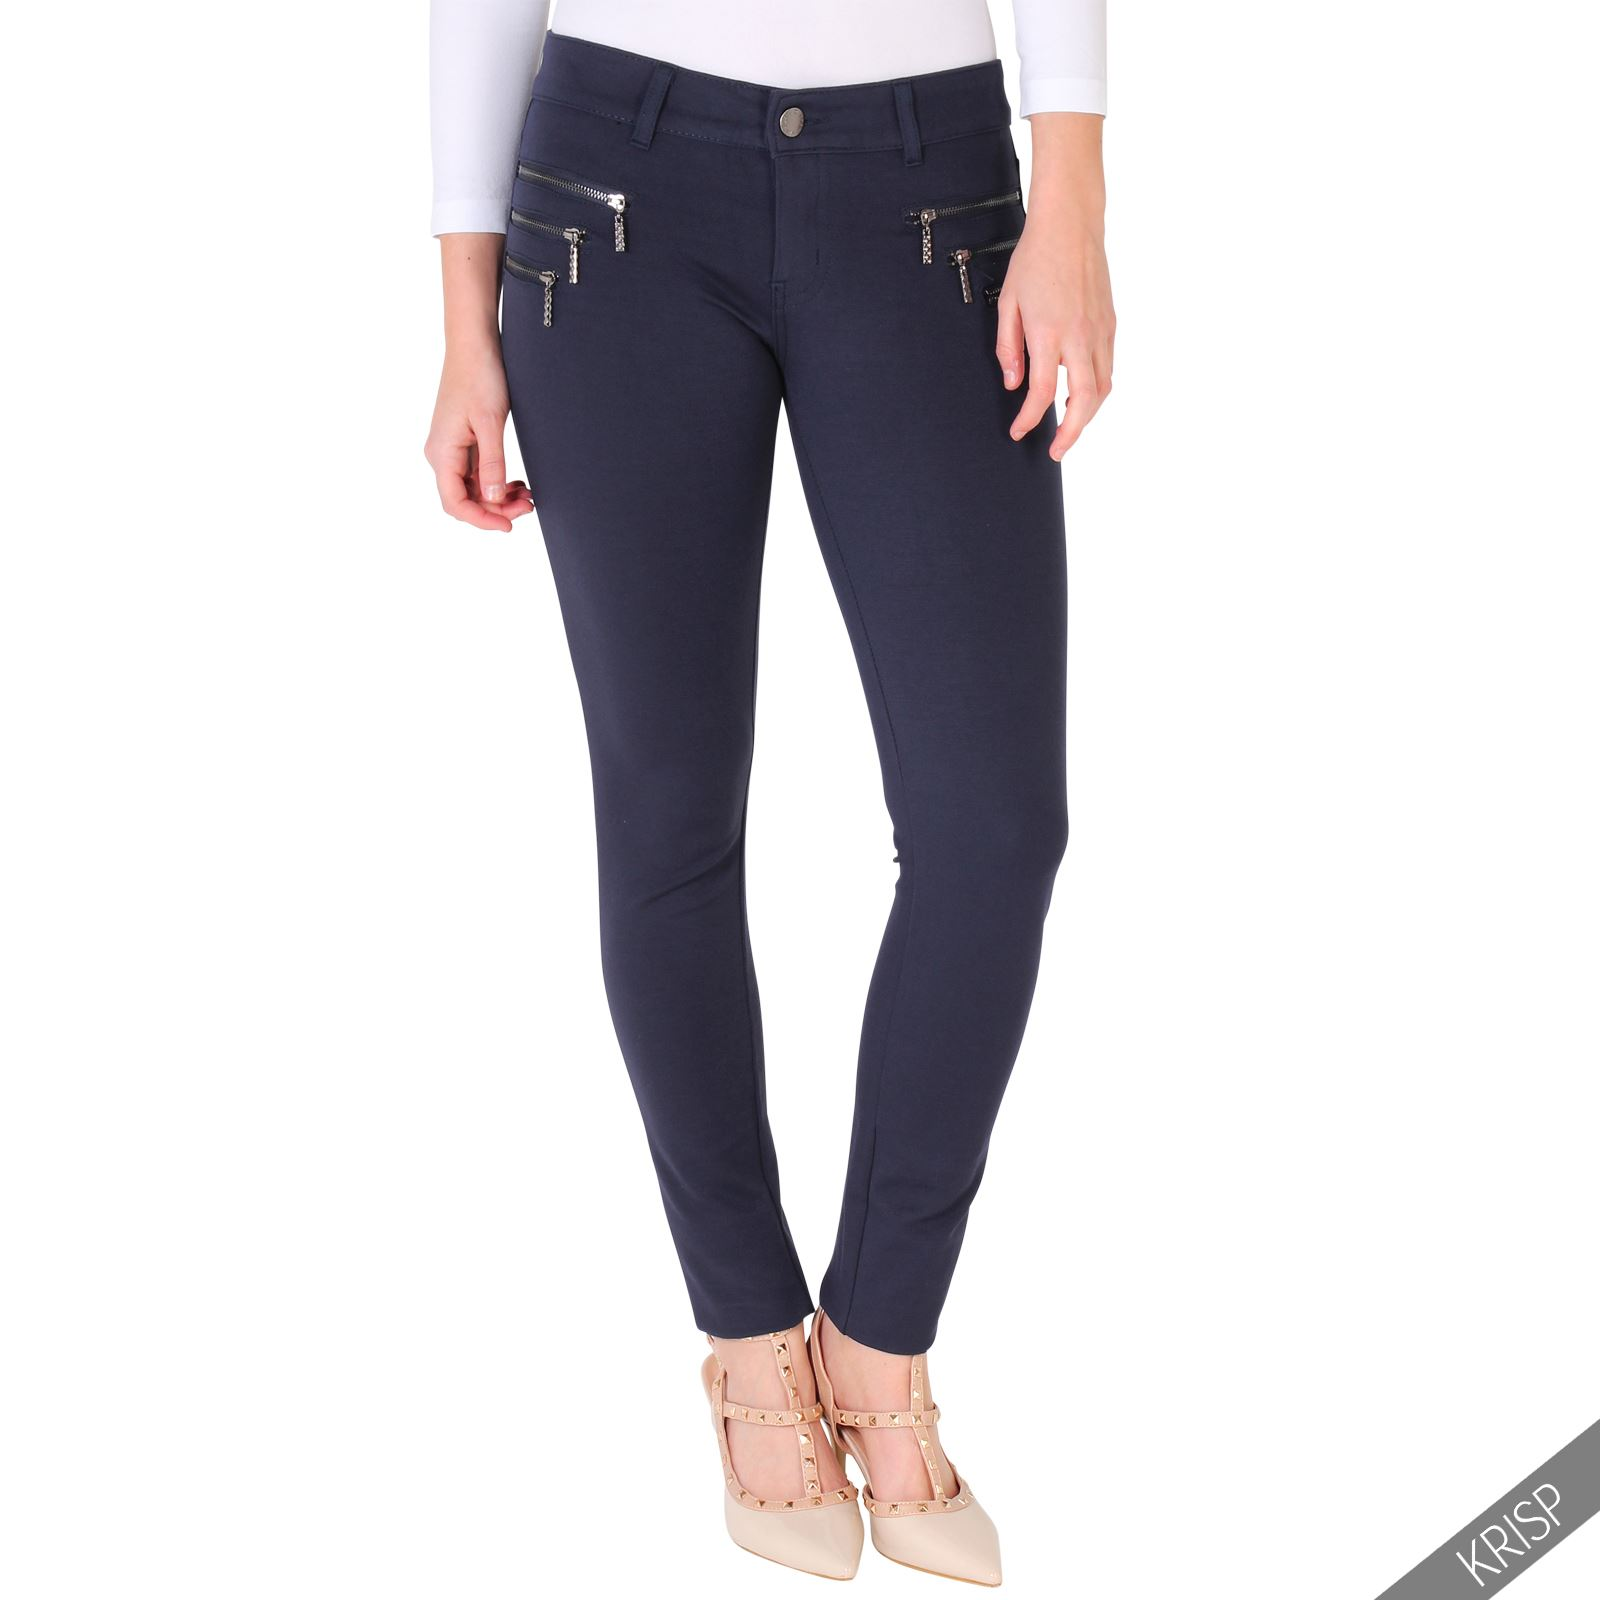 womens stretch skinny fit jeans jeggings leggings casual smart pants trousers. Black Bedroom Furniture Sets. Home Design Ideas